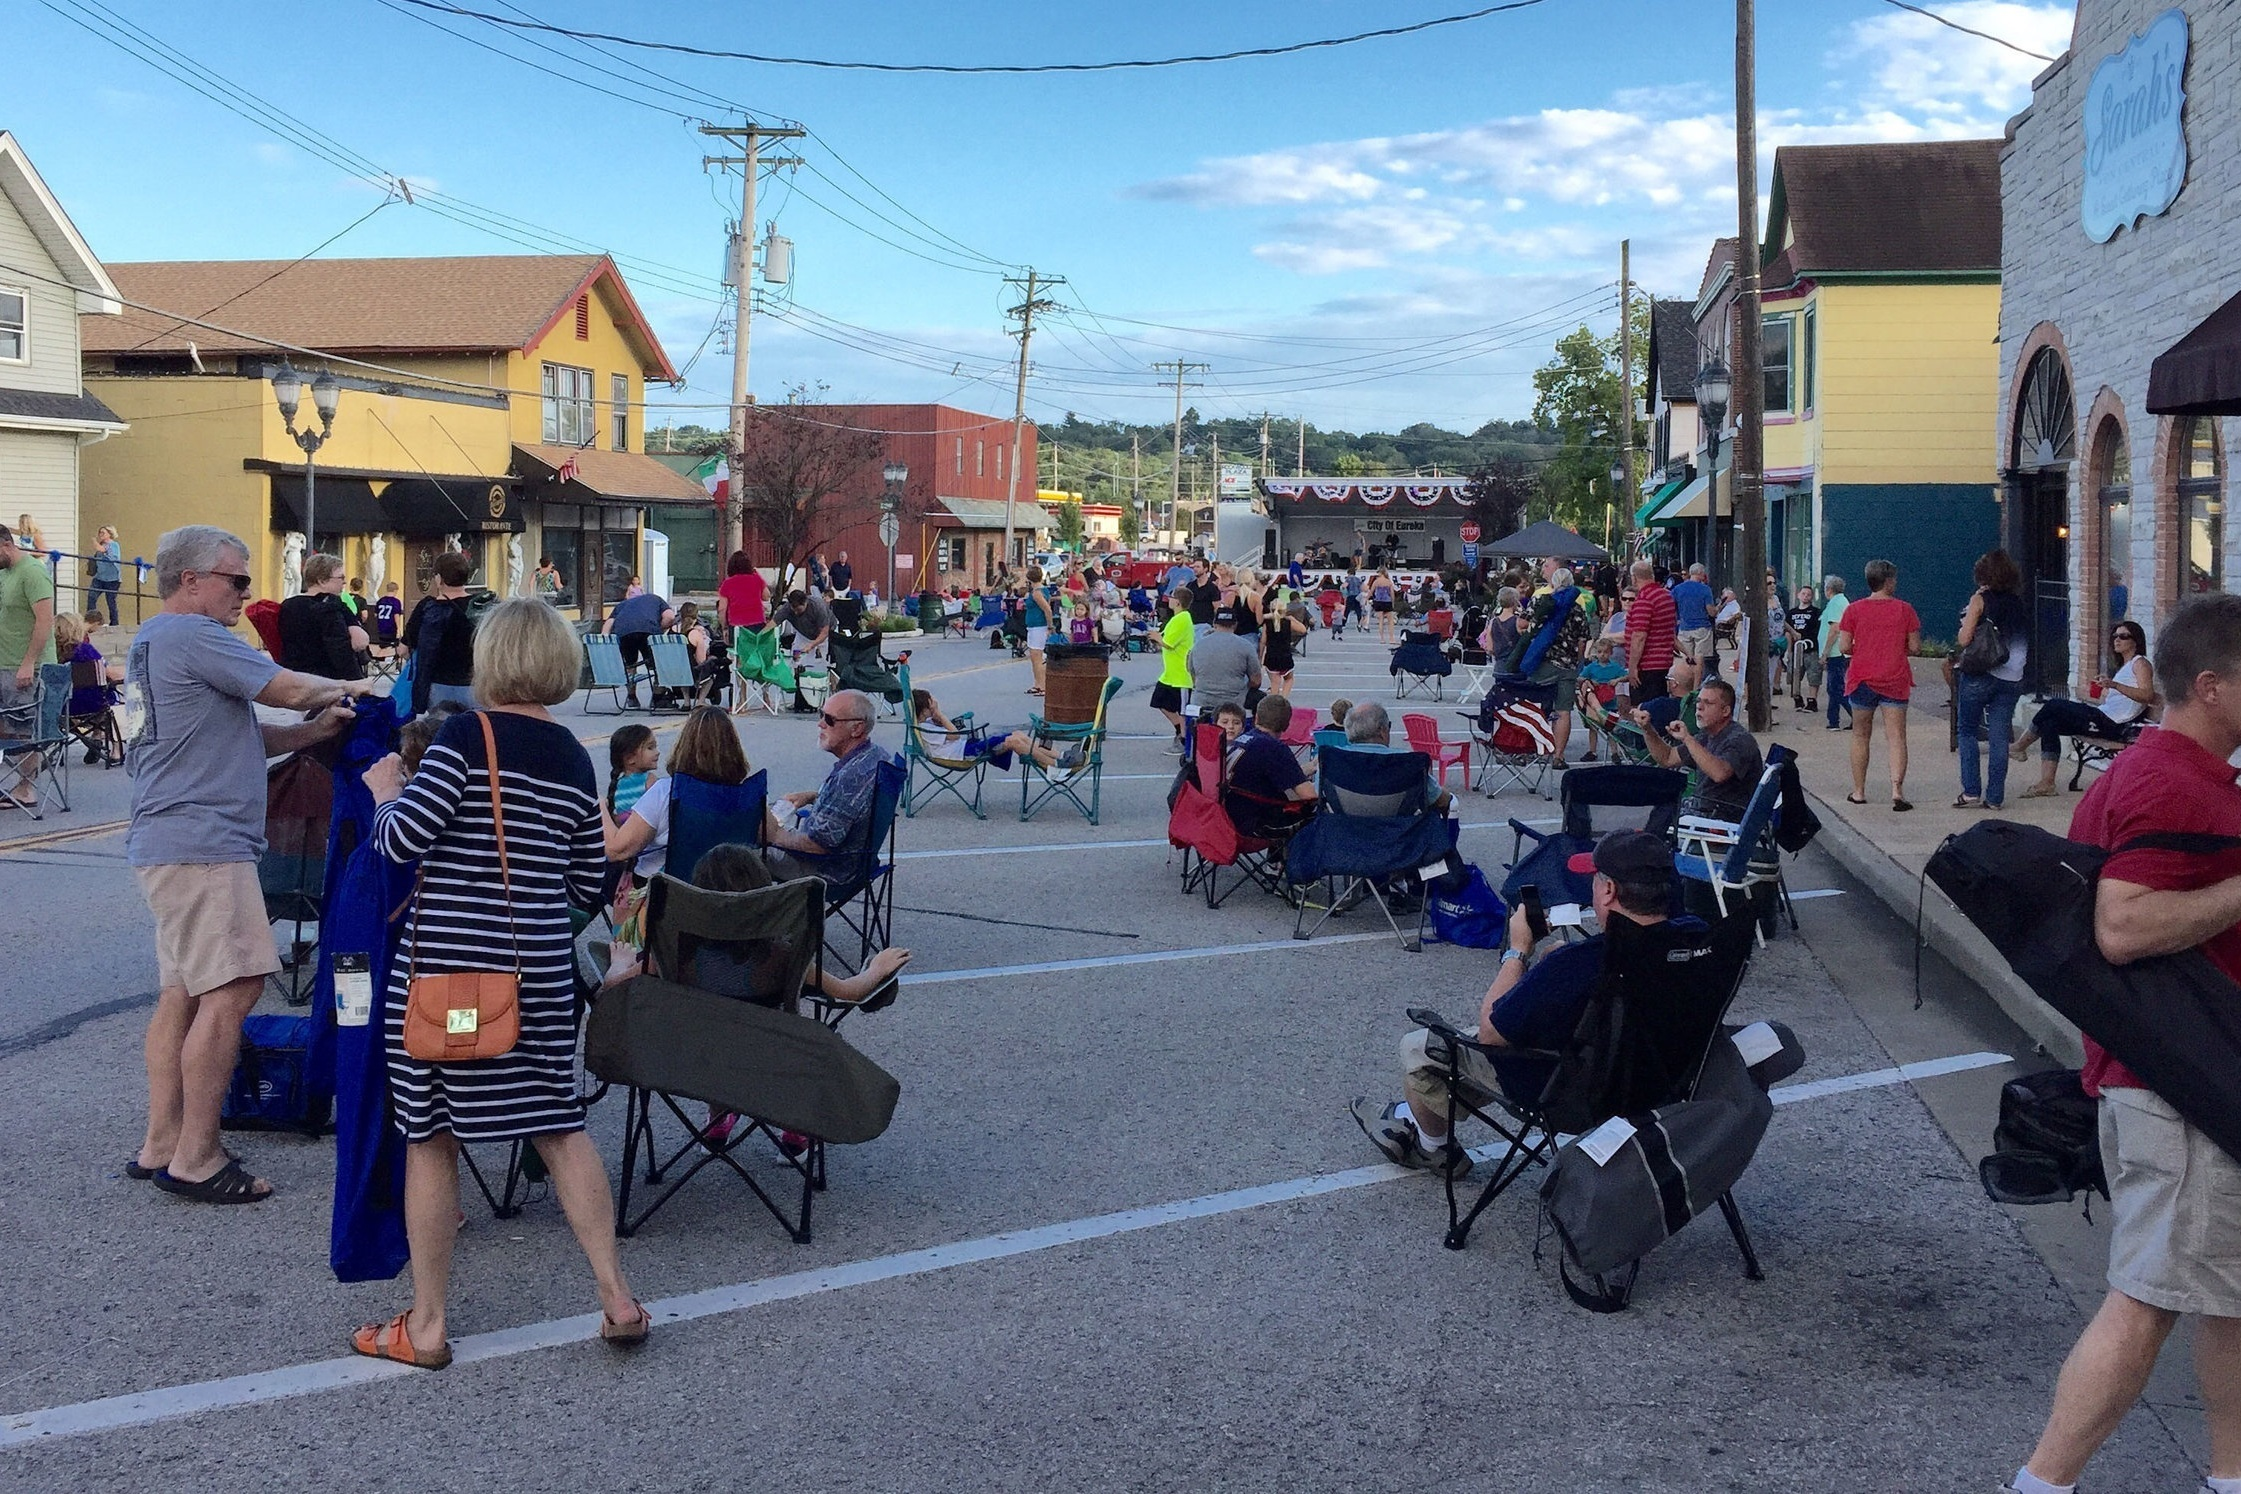 City of Eureka, MO - Propelling a community forwardEureka has the great potential to be a truly vibrant community with its small-town feel and fairly easy access to the larger metropolis of St Louis.